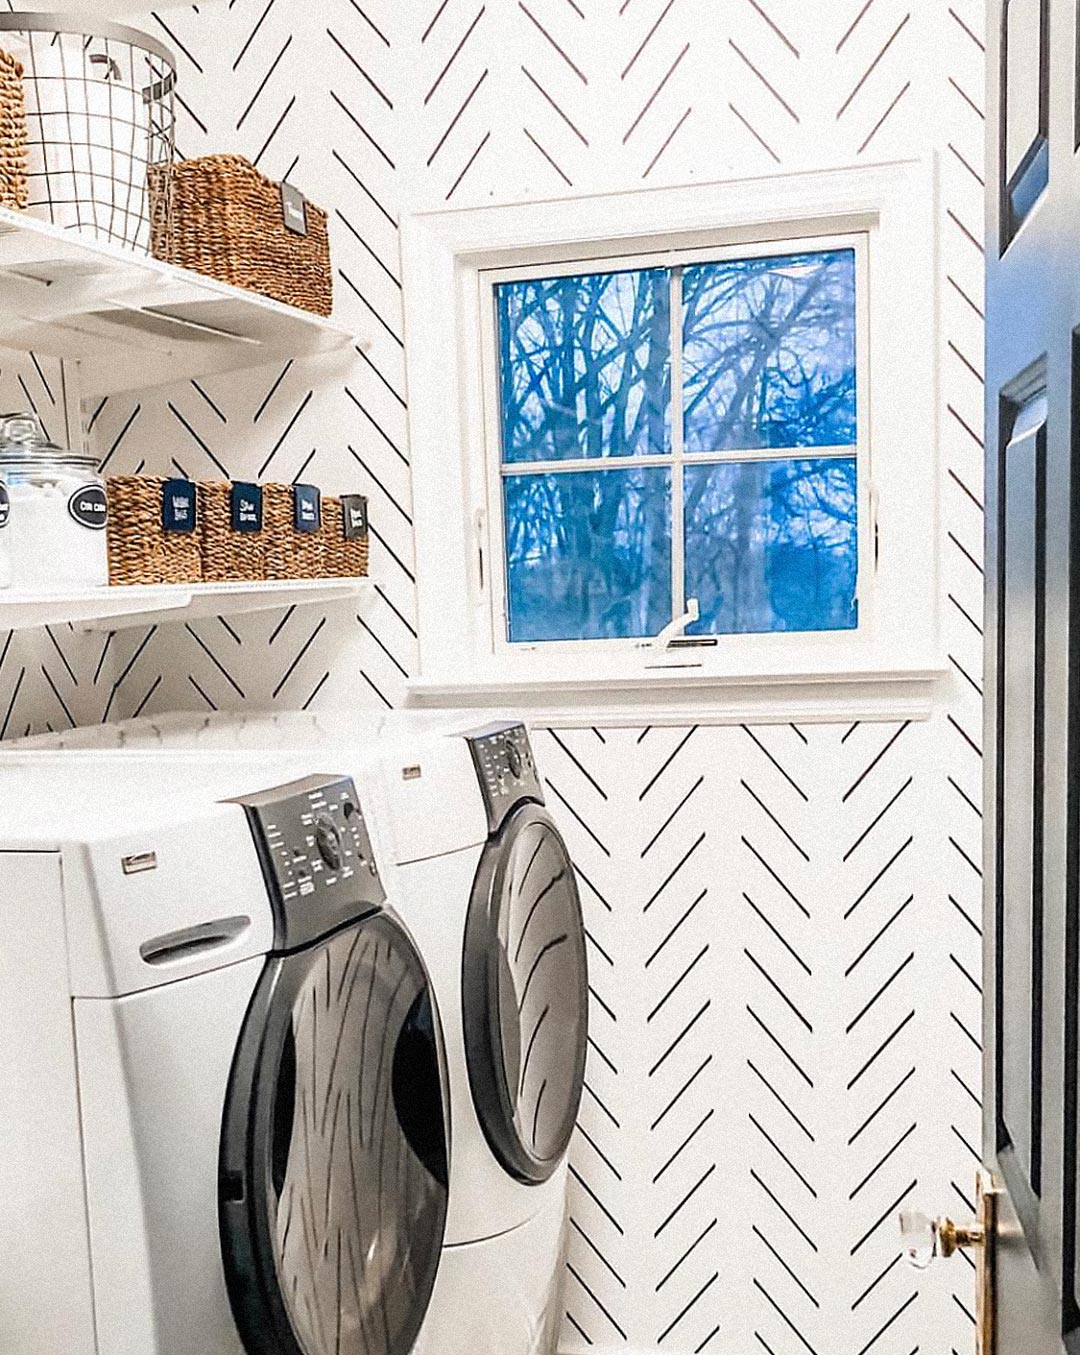 Black and white laundry room interior with white modern herringbone removable peel and stick wallpaper and glass organising containers and jute baskets